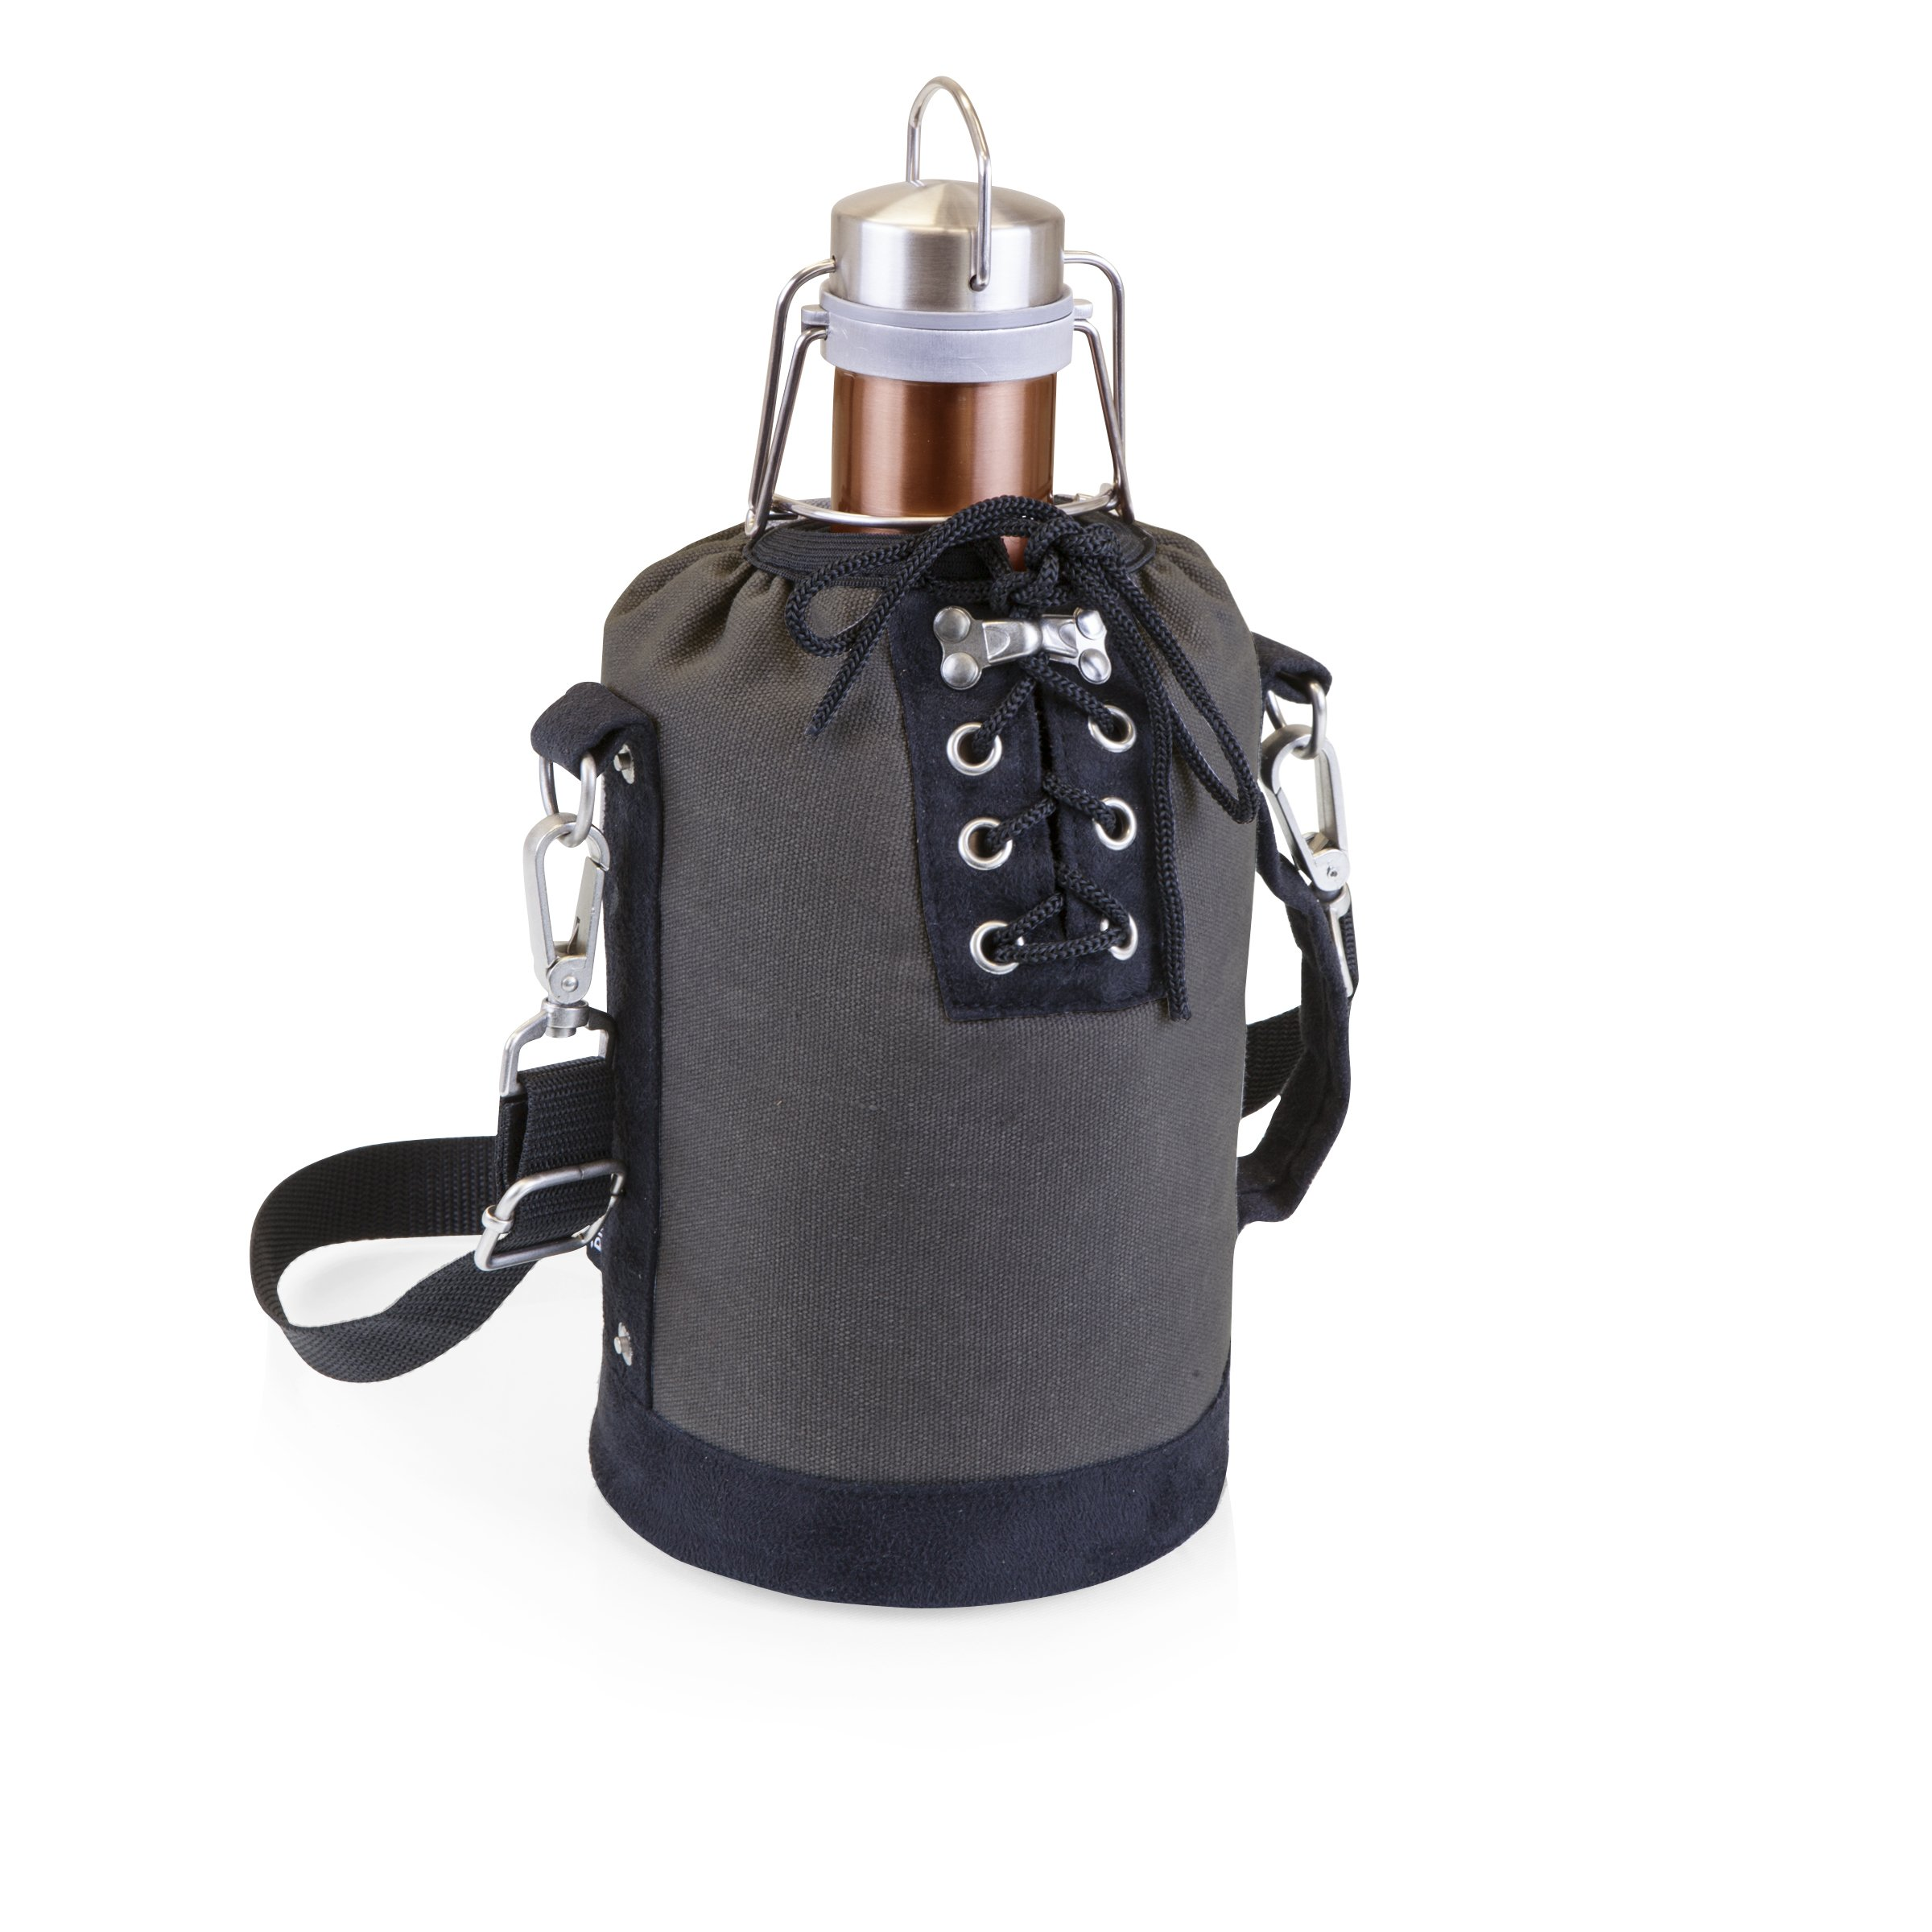 LEGACY - a Picnic Time Brand Stainless Steel Growler with Copper Finish and Gray and Black Canvas Lace up Growler Tote, 64-Ounce